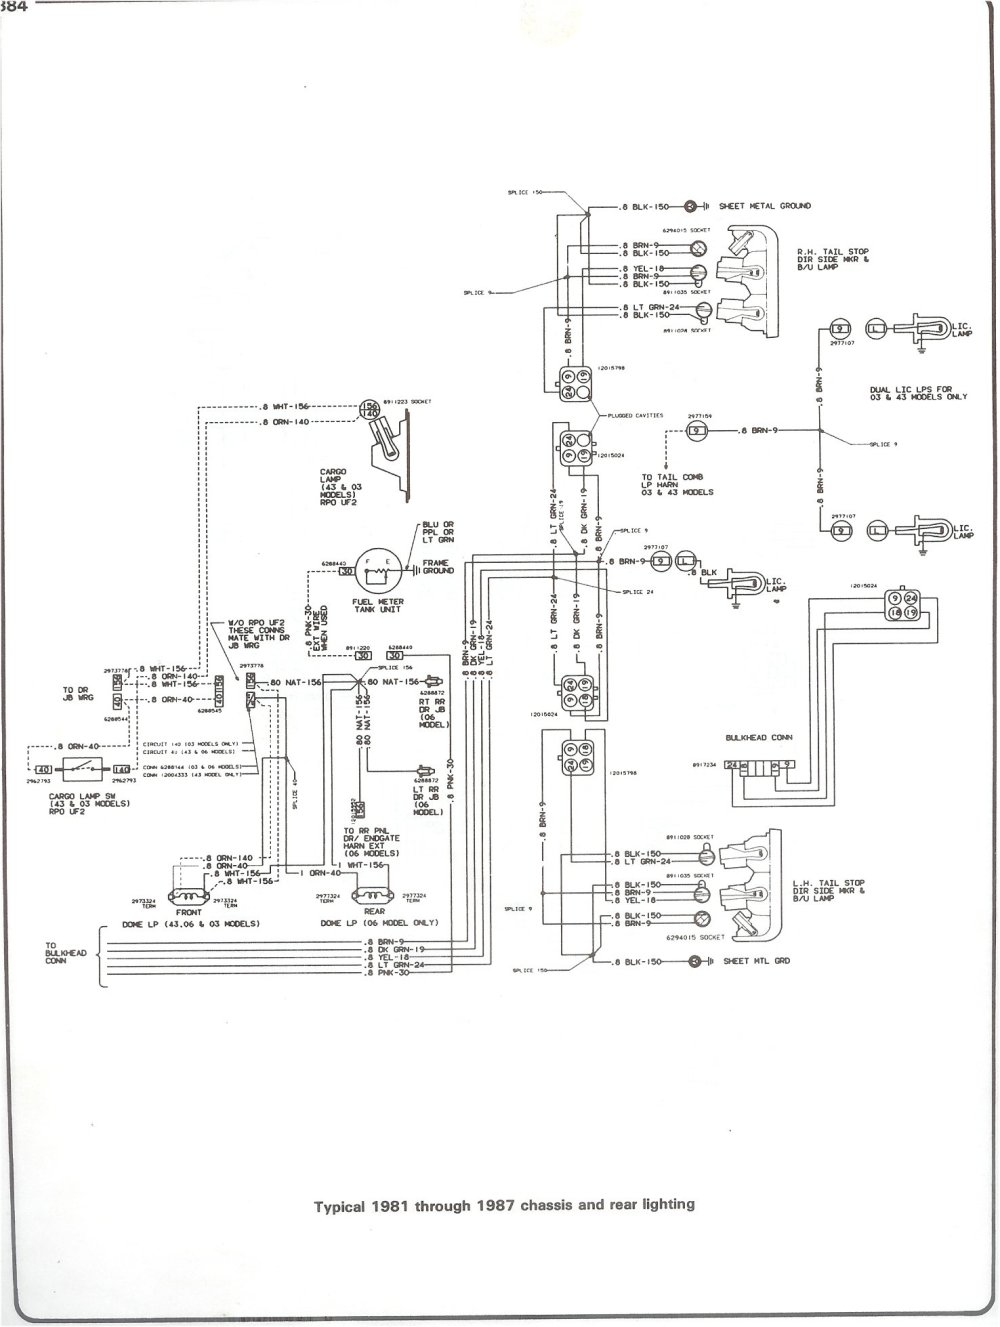 medium resolution of 1986 chevy c10 wiring diagram schematics wiring diagram rh sylviaexpress com 3 wire headlight wiring diagram 1997 cougar